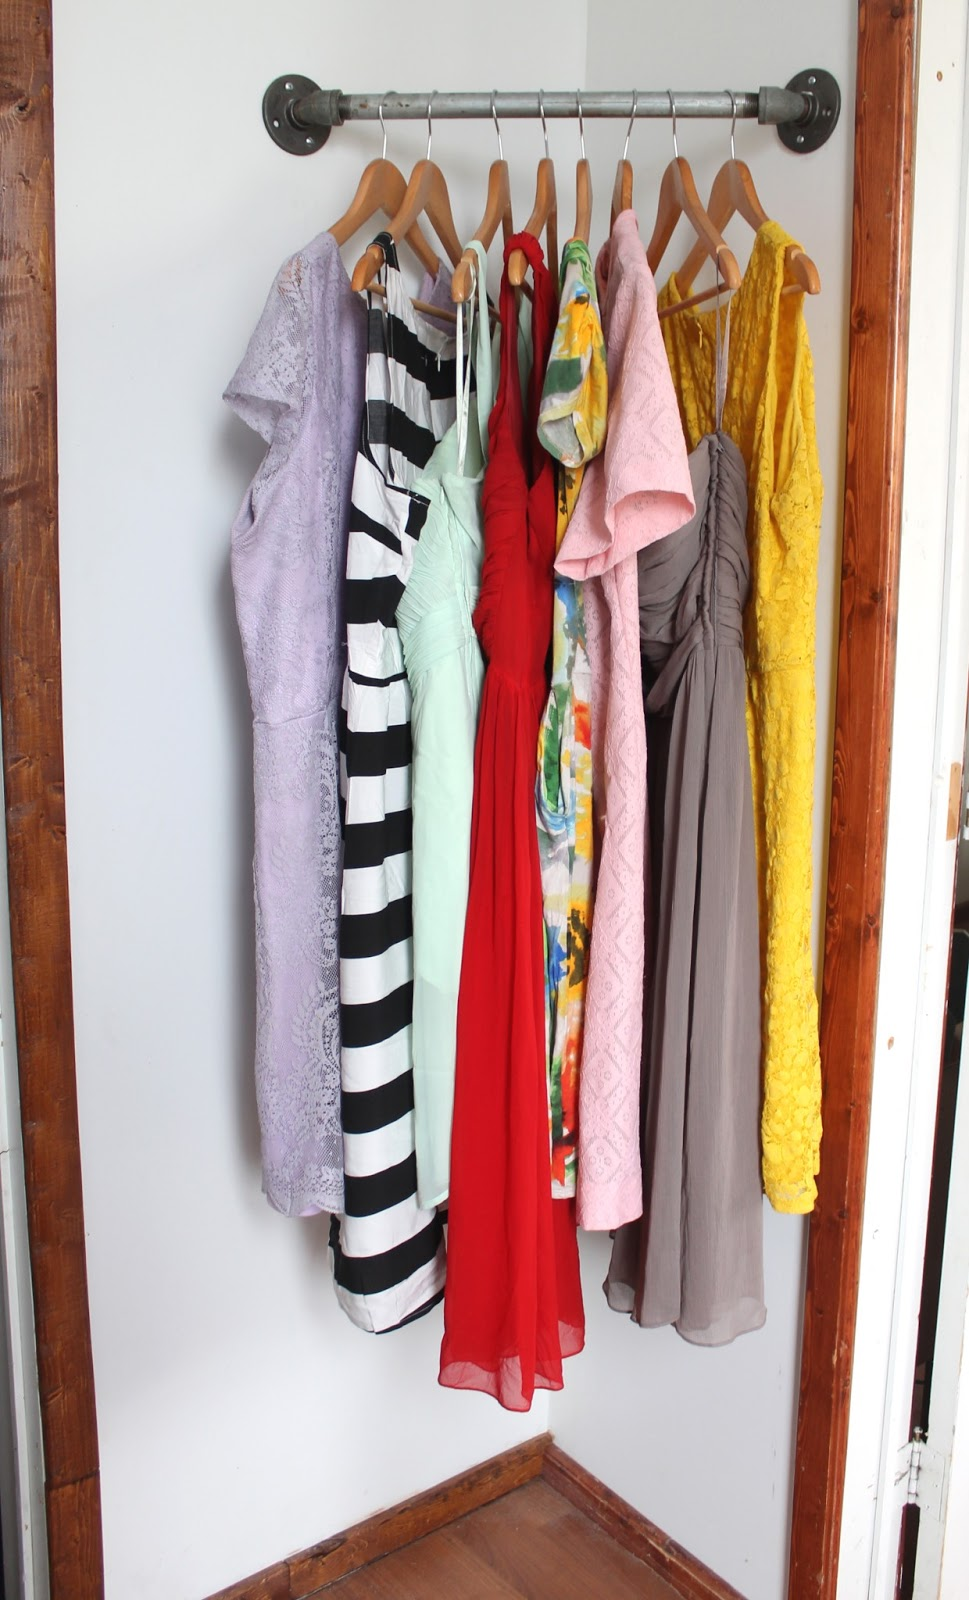 This is so clever. Creating a little extra hanging storage in an unused corner! Found on Radical Possibility.